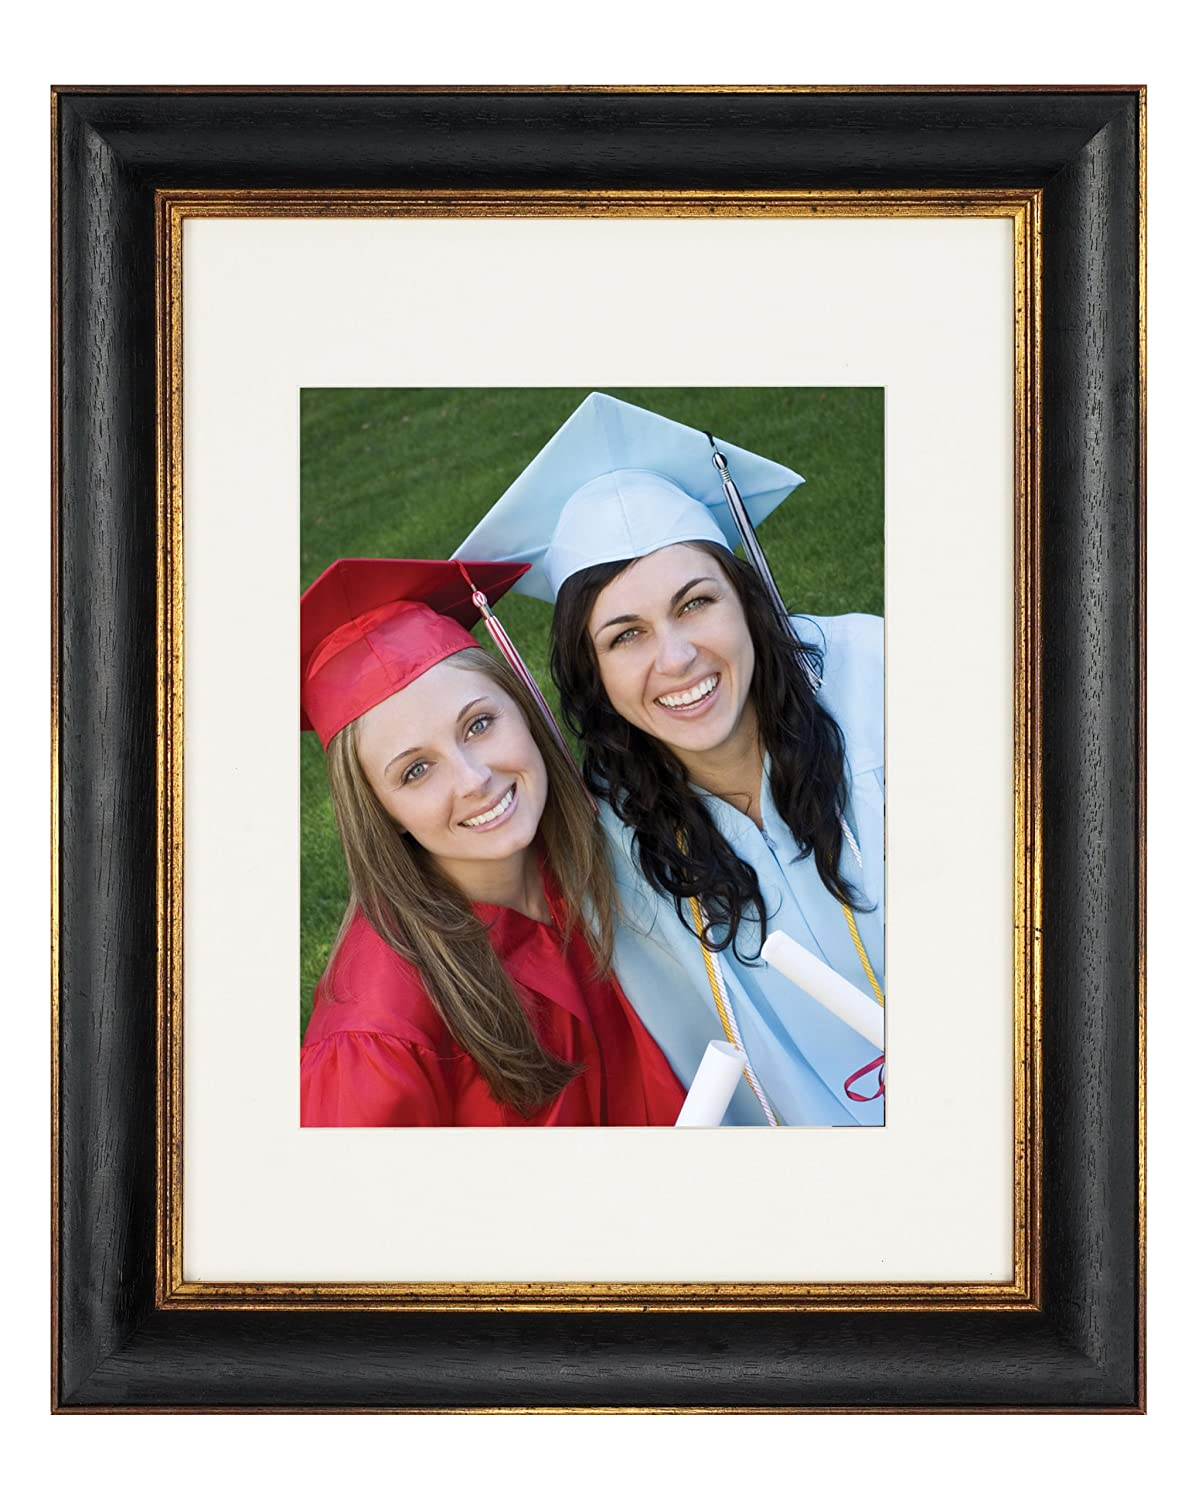 Artcare 8x10 Tuscan Collection Black and Gold Archival Wood Frame With Single Warm White Mat For 5x7 Image #RW0761BG. Includes: UV Glazed Glass and Anti Aging Liner NBG Home